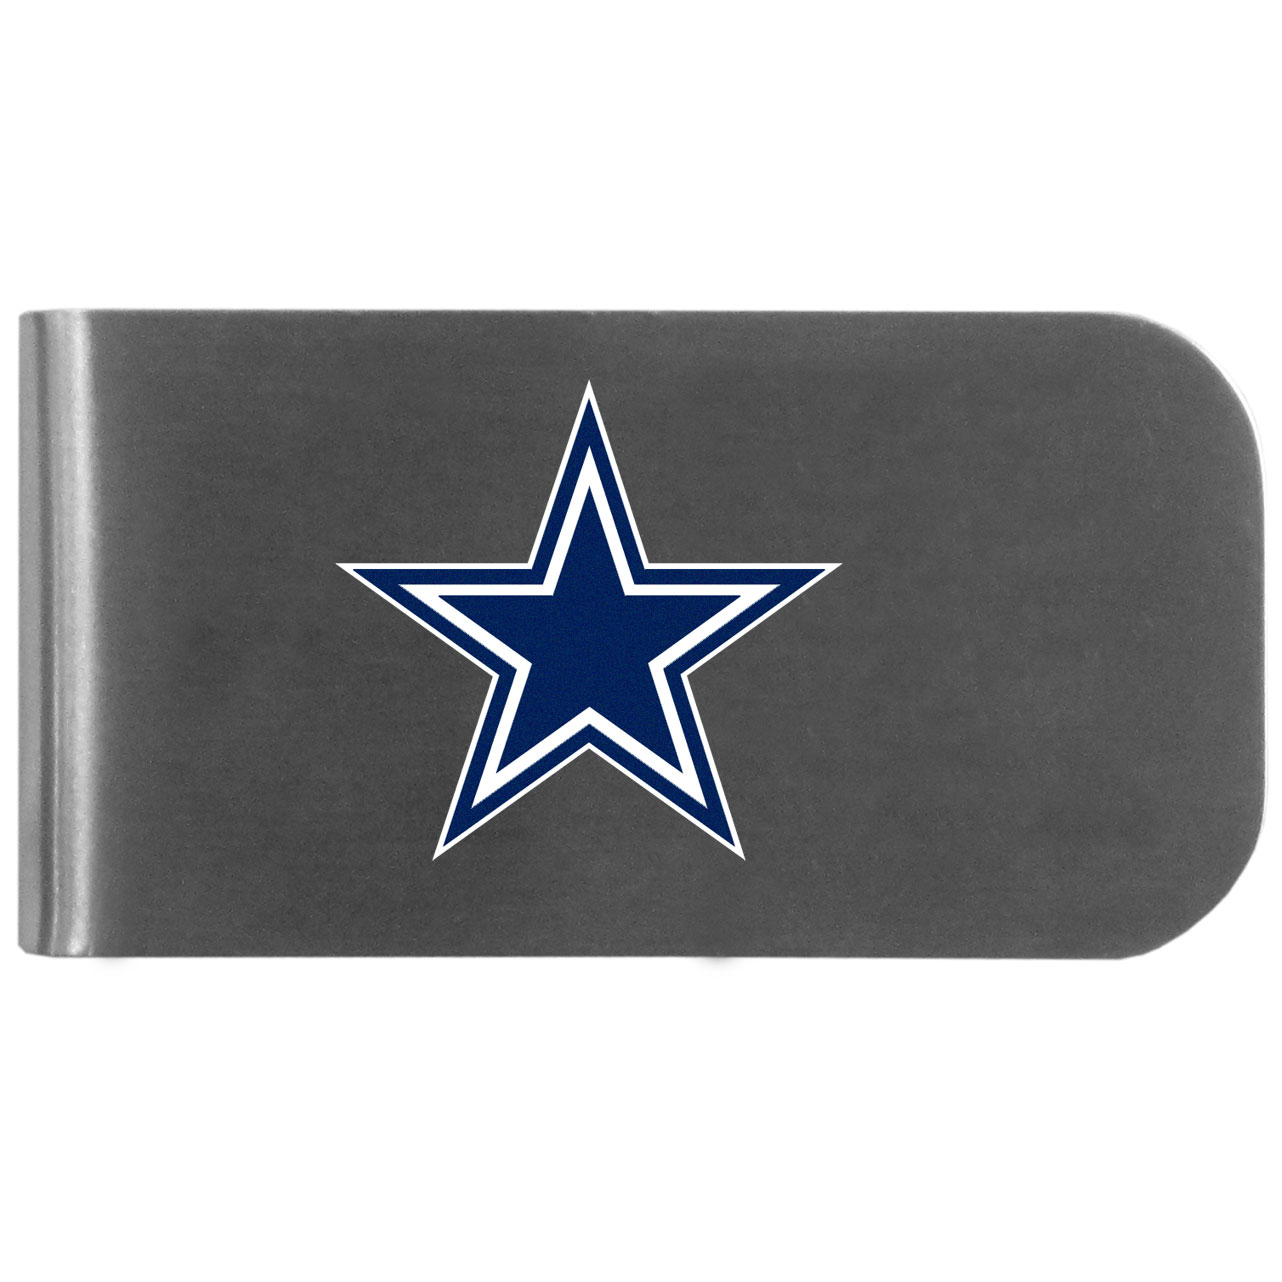 Dallas Cowboys Logo Bottle Opener Money Clip - This unique money clip features a classic, brushed-metal finish with a handy bottle opener feature on the back. The clip has the Dallas Cowboys logo expertly printed on the front of the clip.